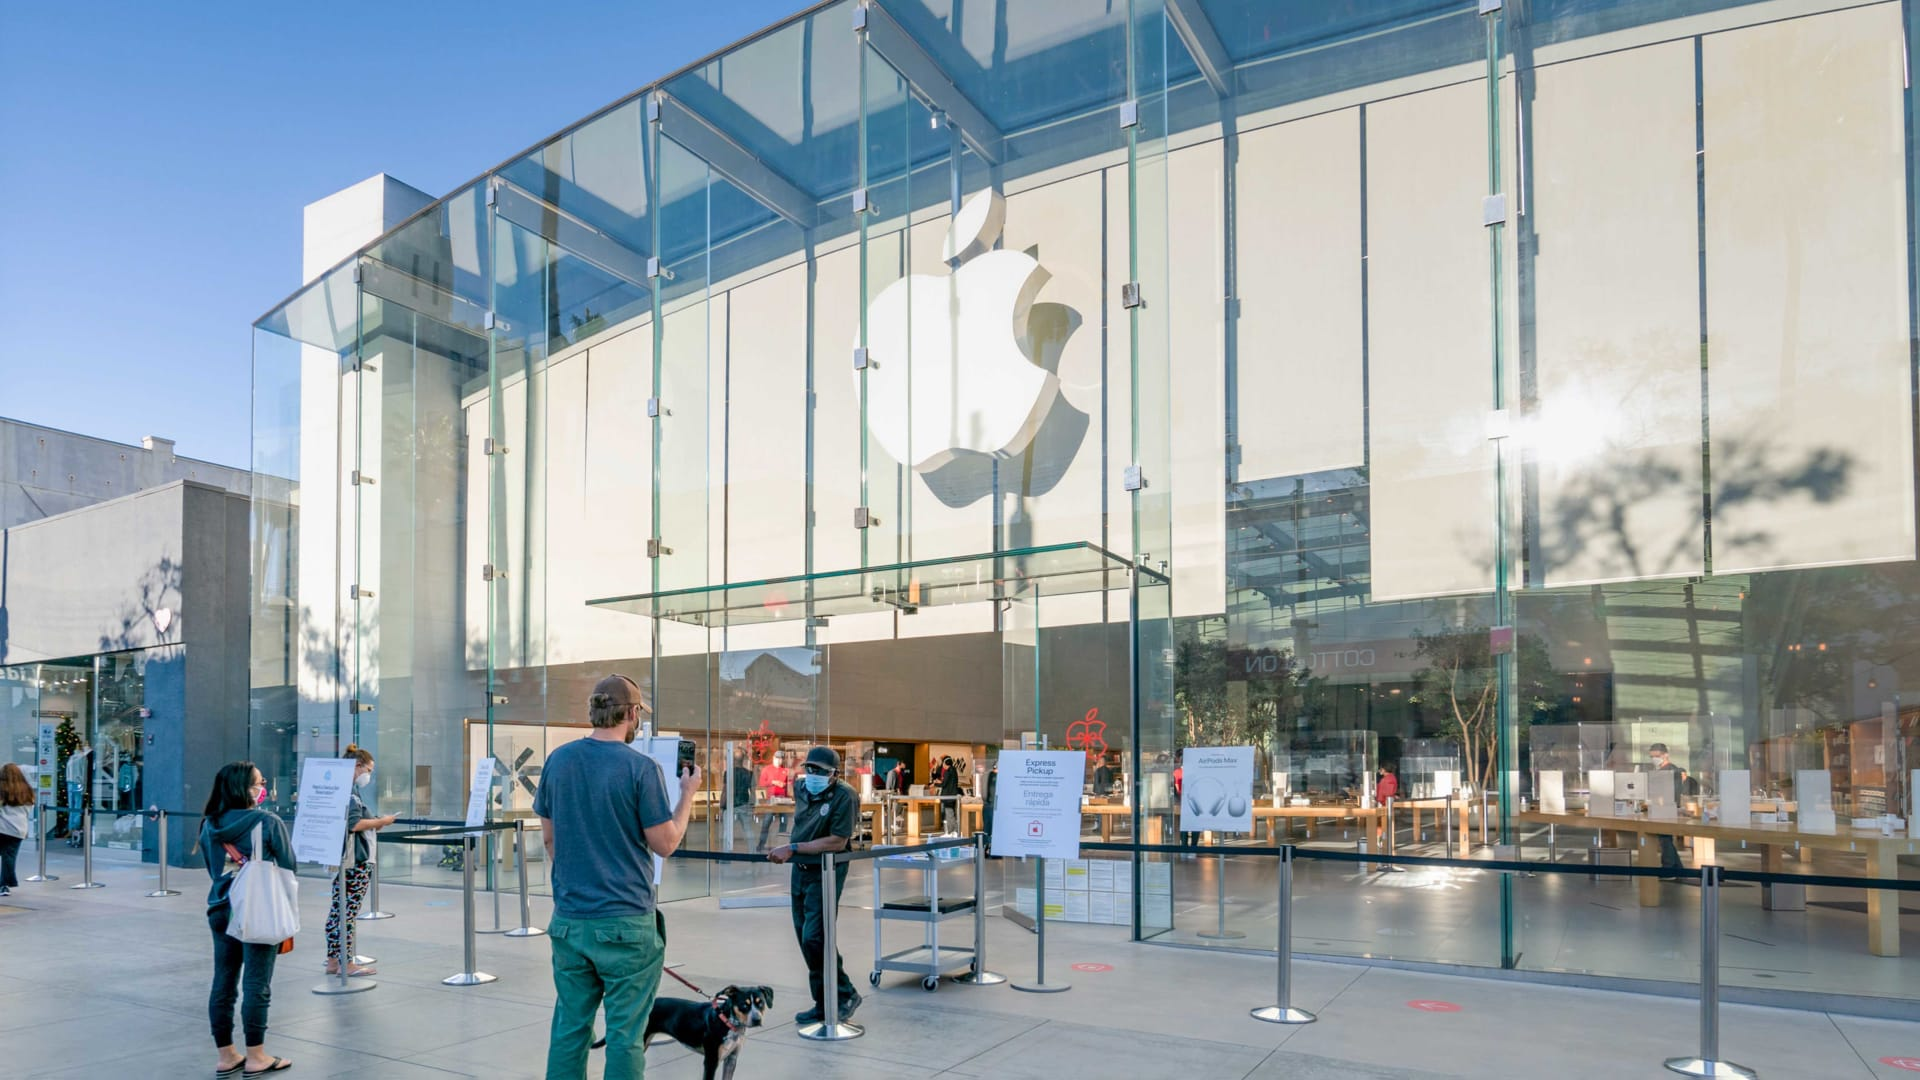 All of Apple's U.S. Stores Have Reopened. Why That's a Very Good Sign for Everyone